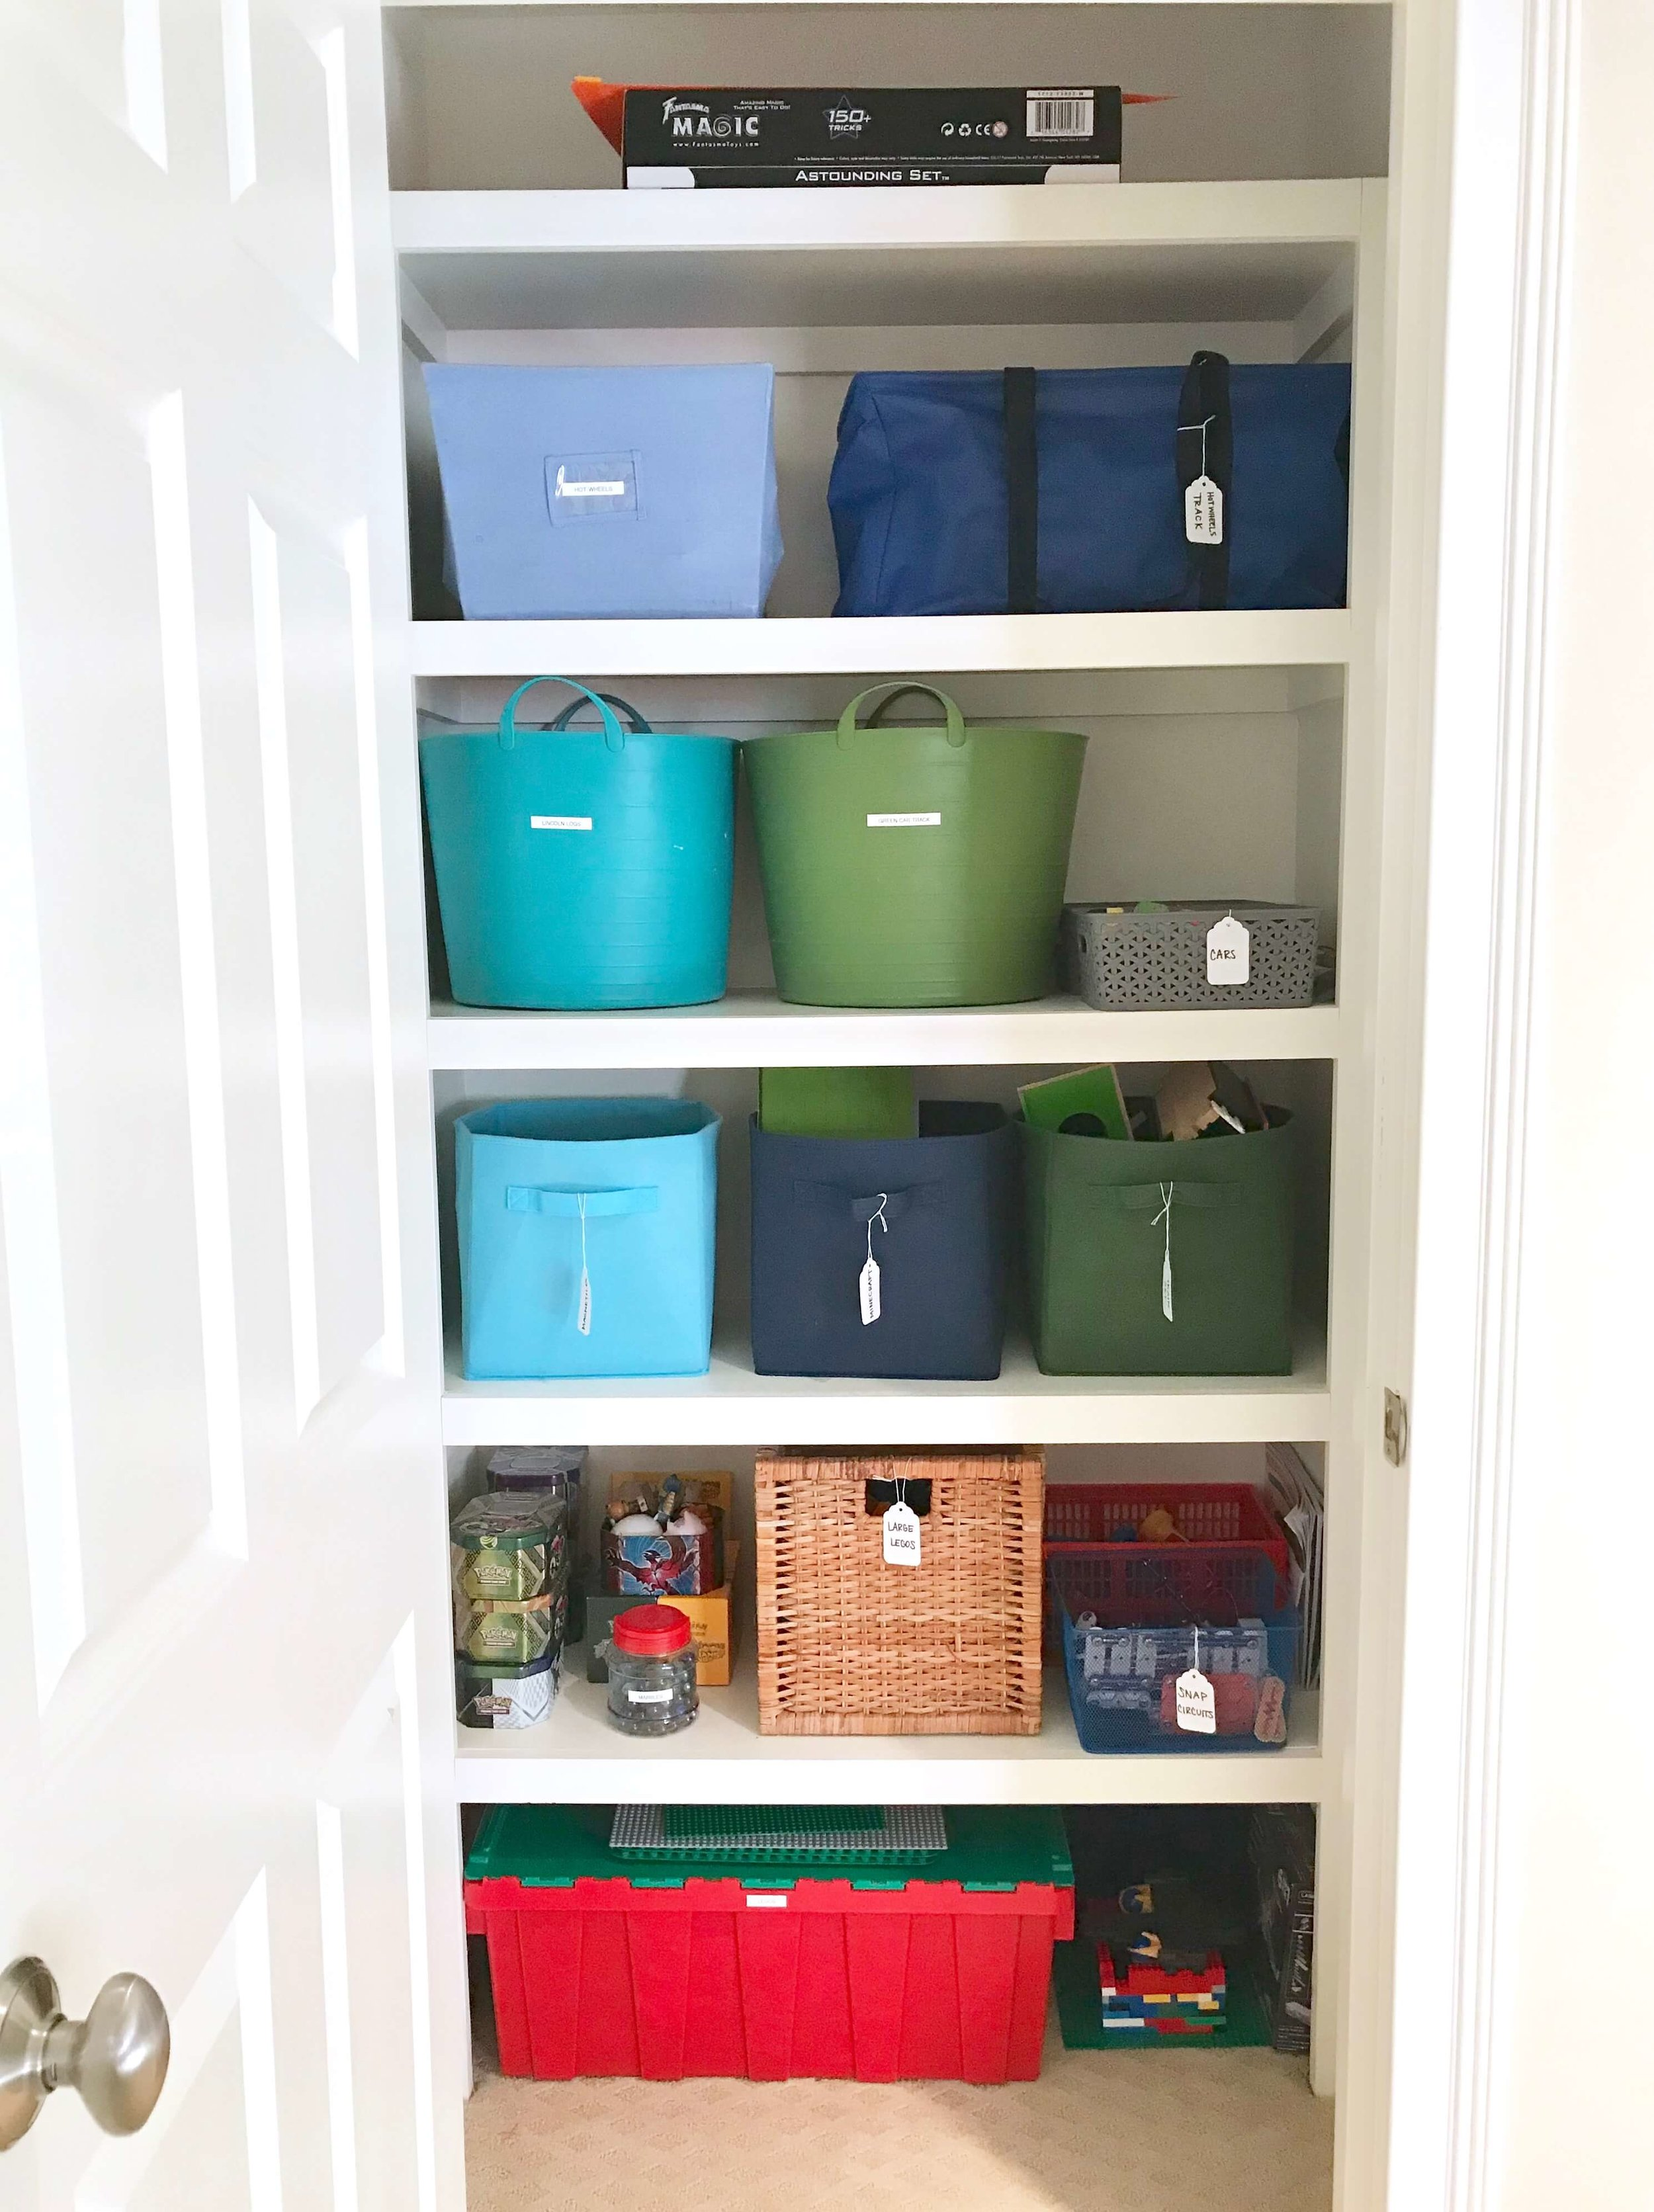 Categorize and label toys and supplies for easy access and a clean organized look.